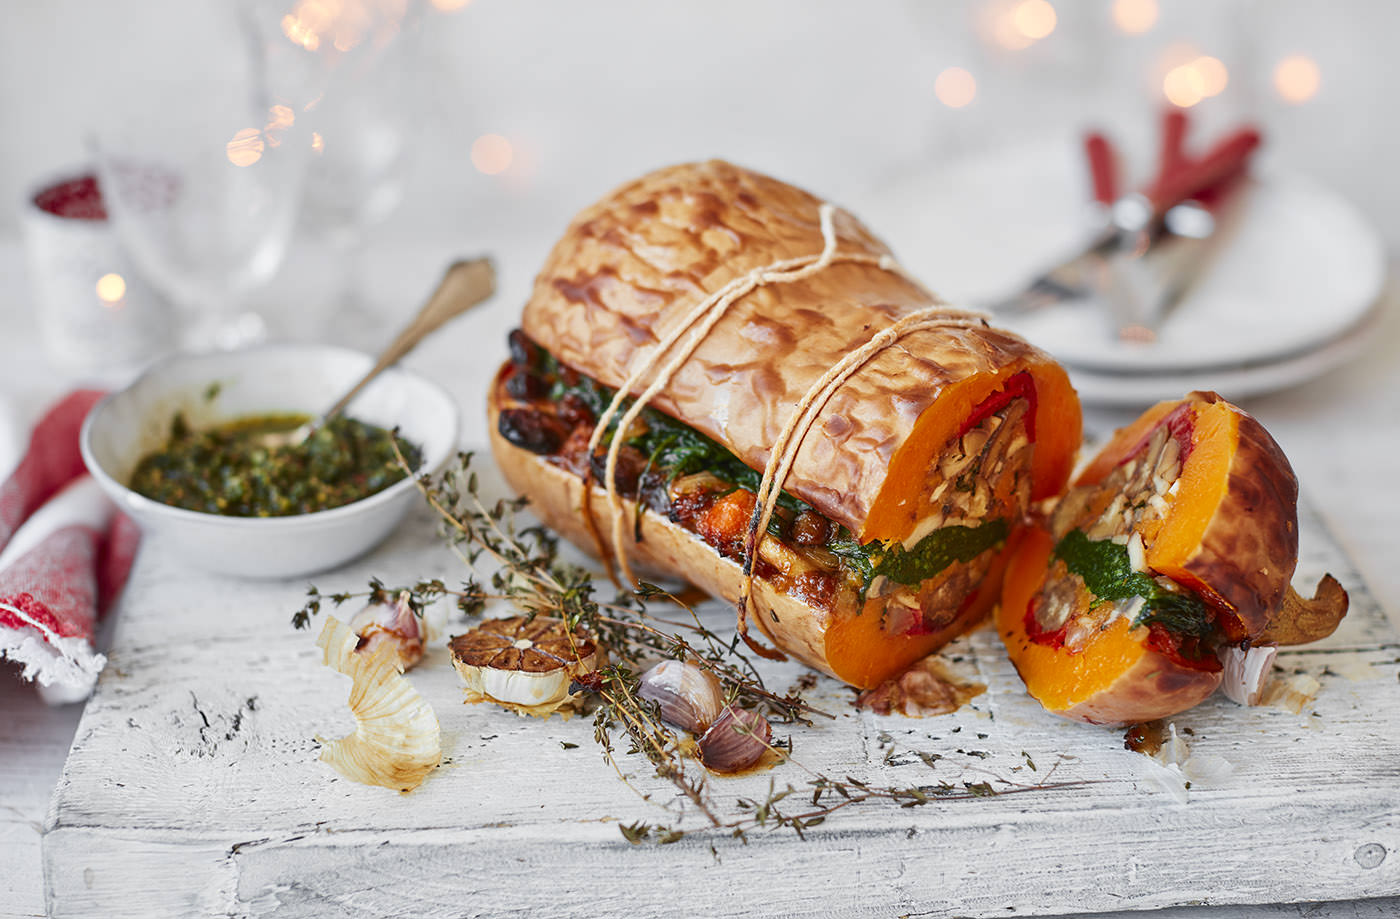 Vegan Christmas Recipes.Tesco Launches App To Help People Find Delicious Vegan